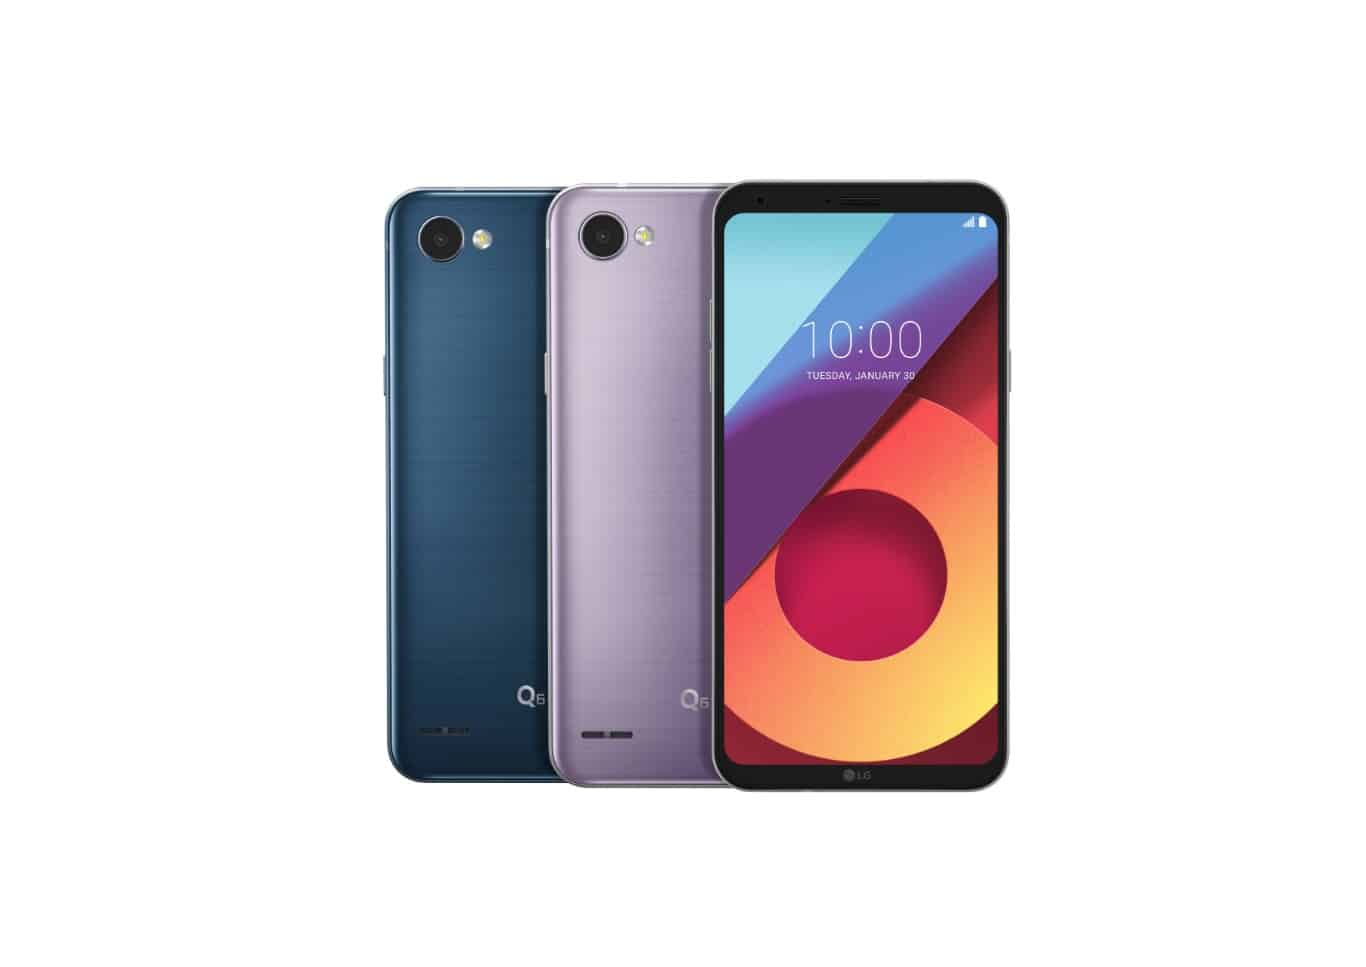 LG G6 and Q6 new colors January 2018 3